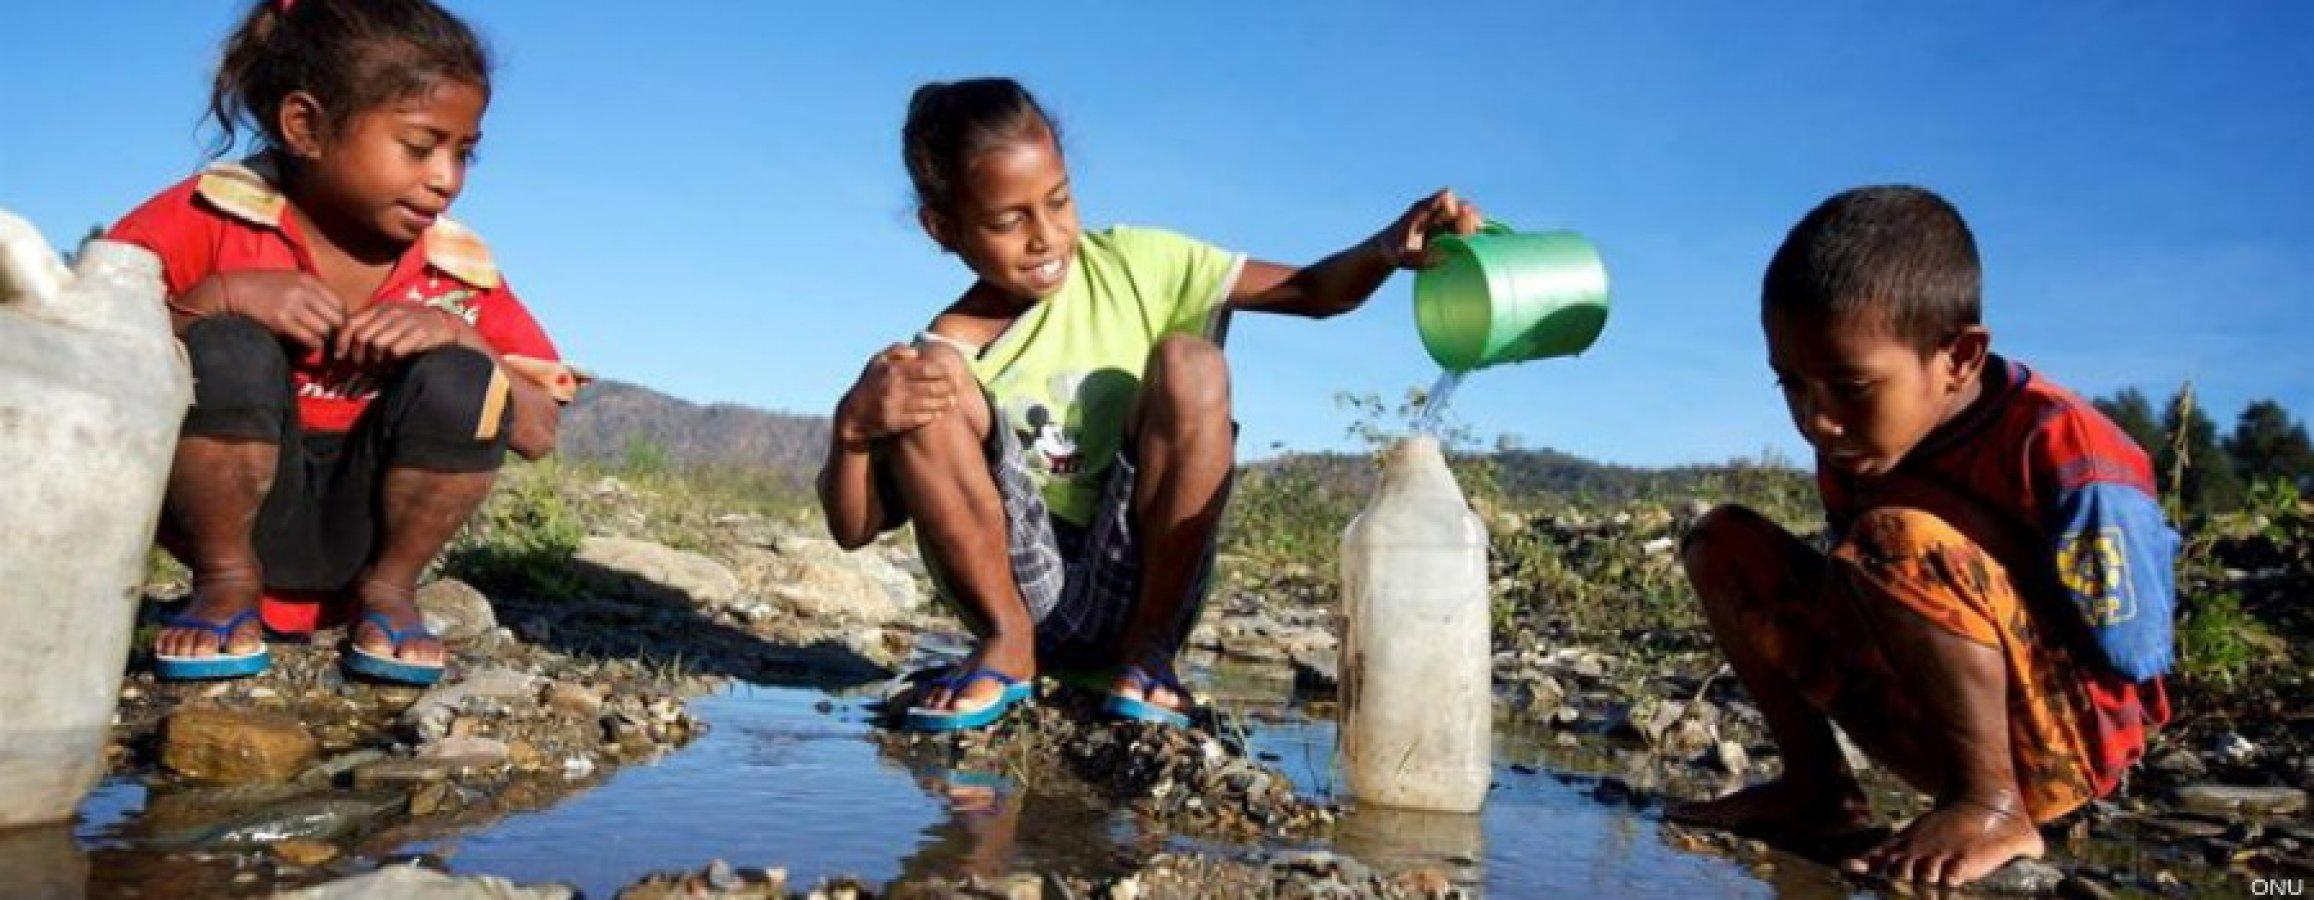 Living without water: the crisis pushing people out of El Salvador